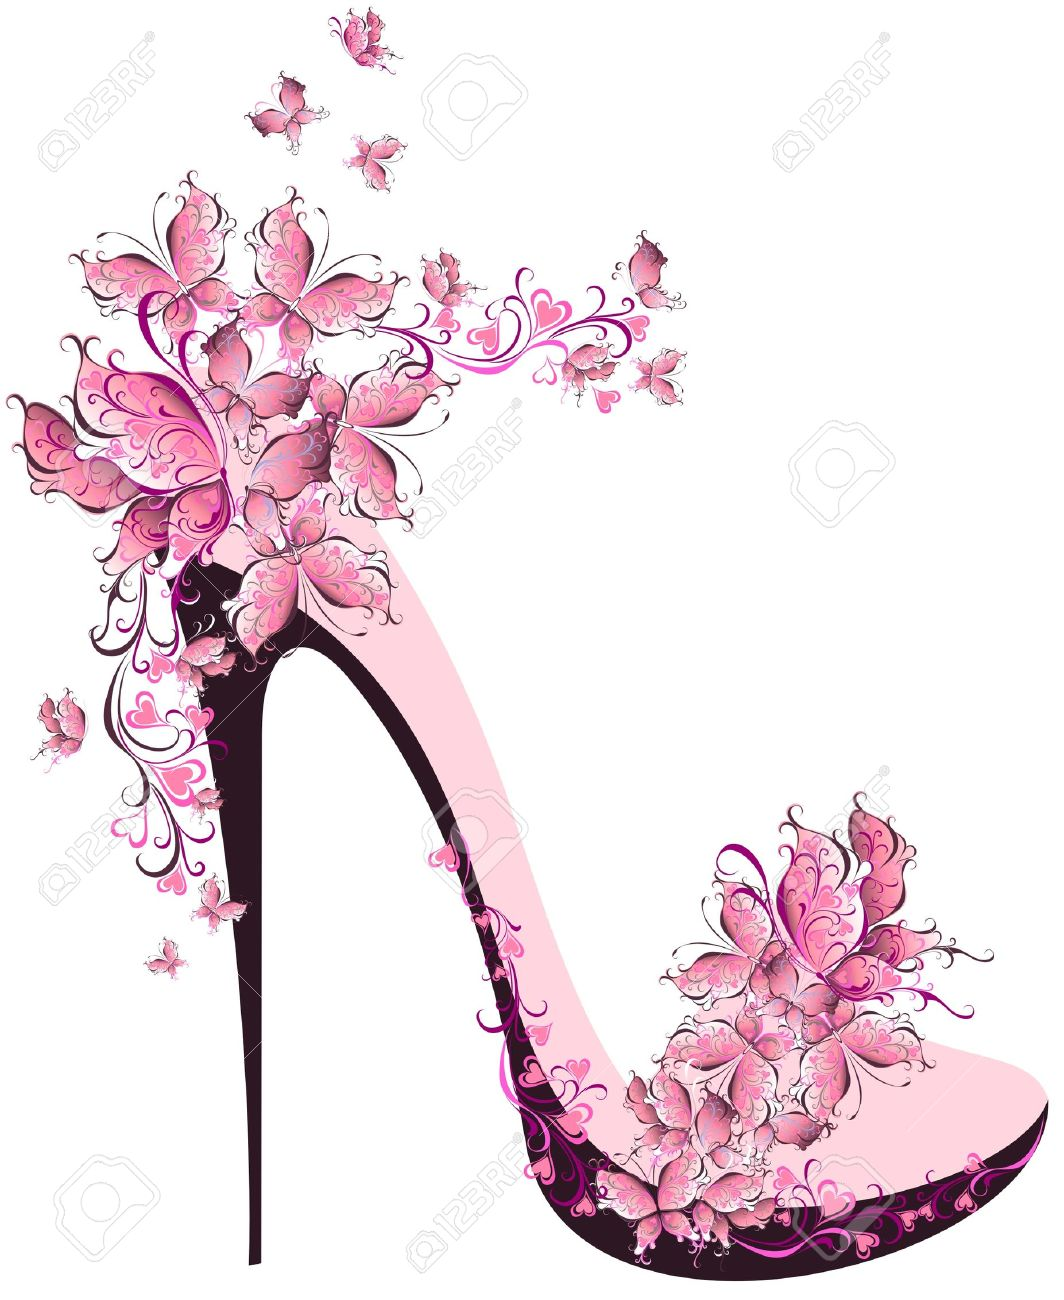 Shoes on a high heel decorated with butterflies.